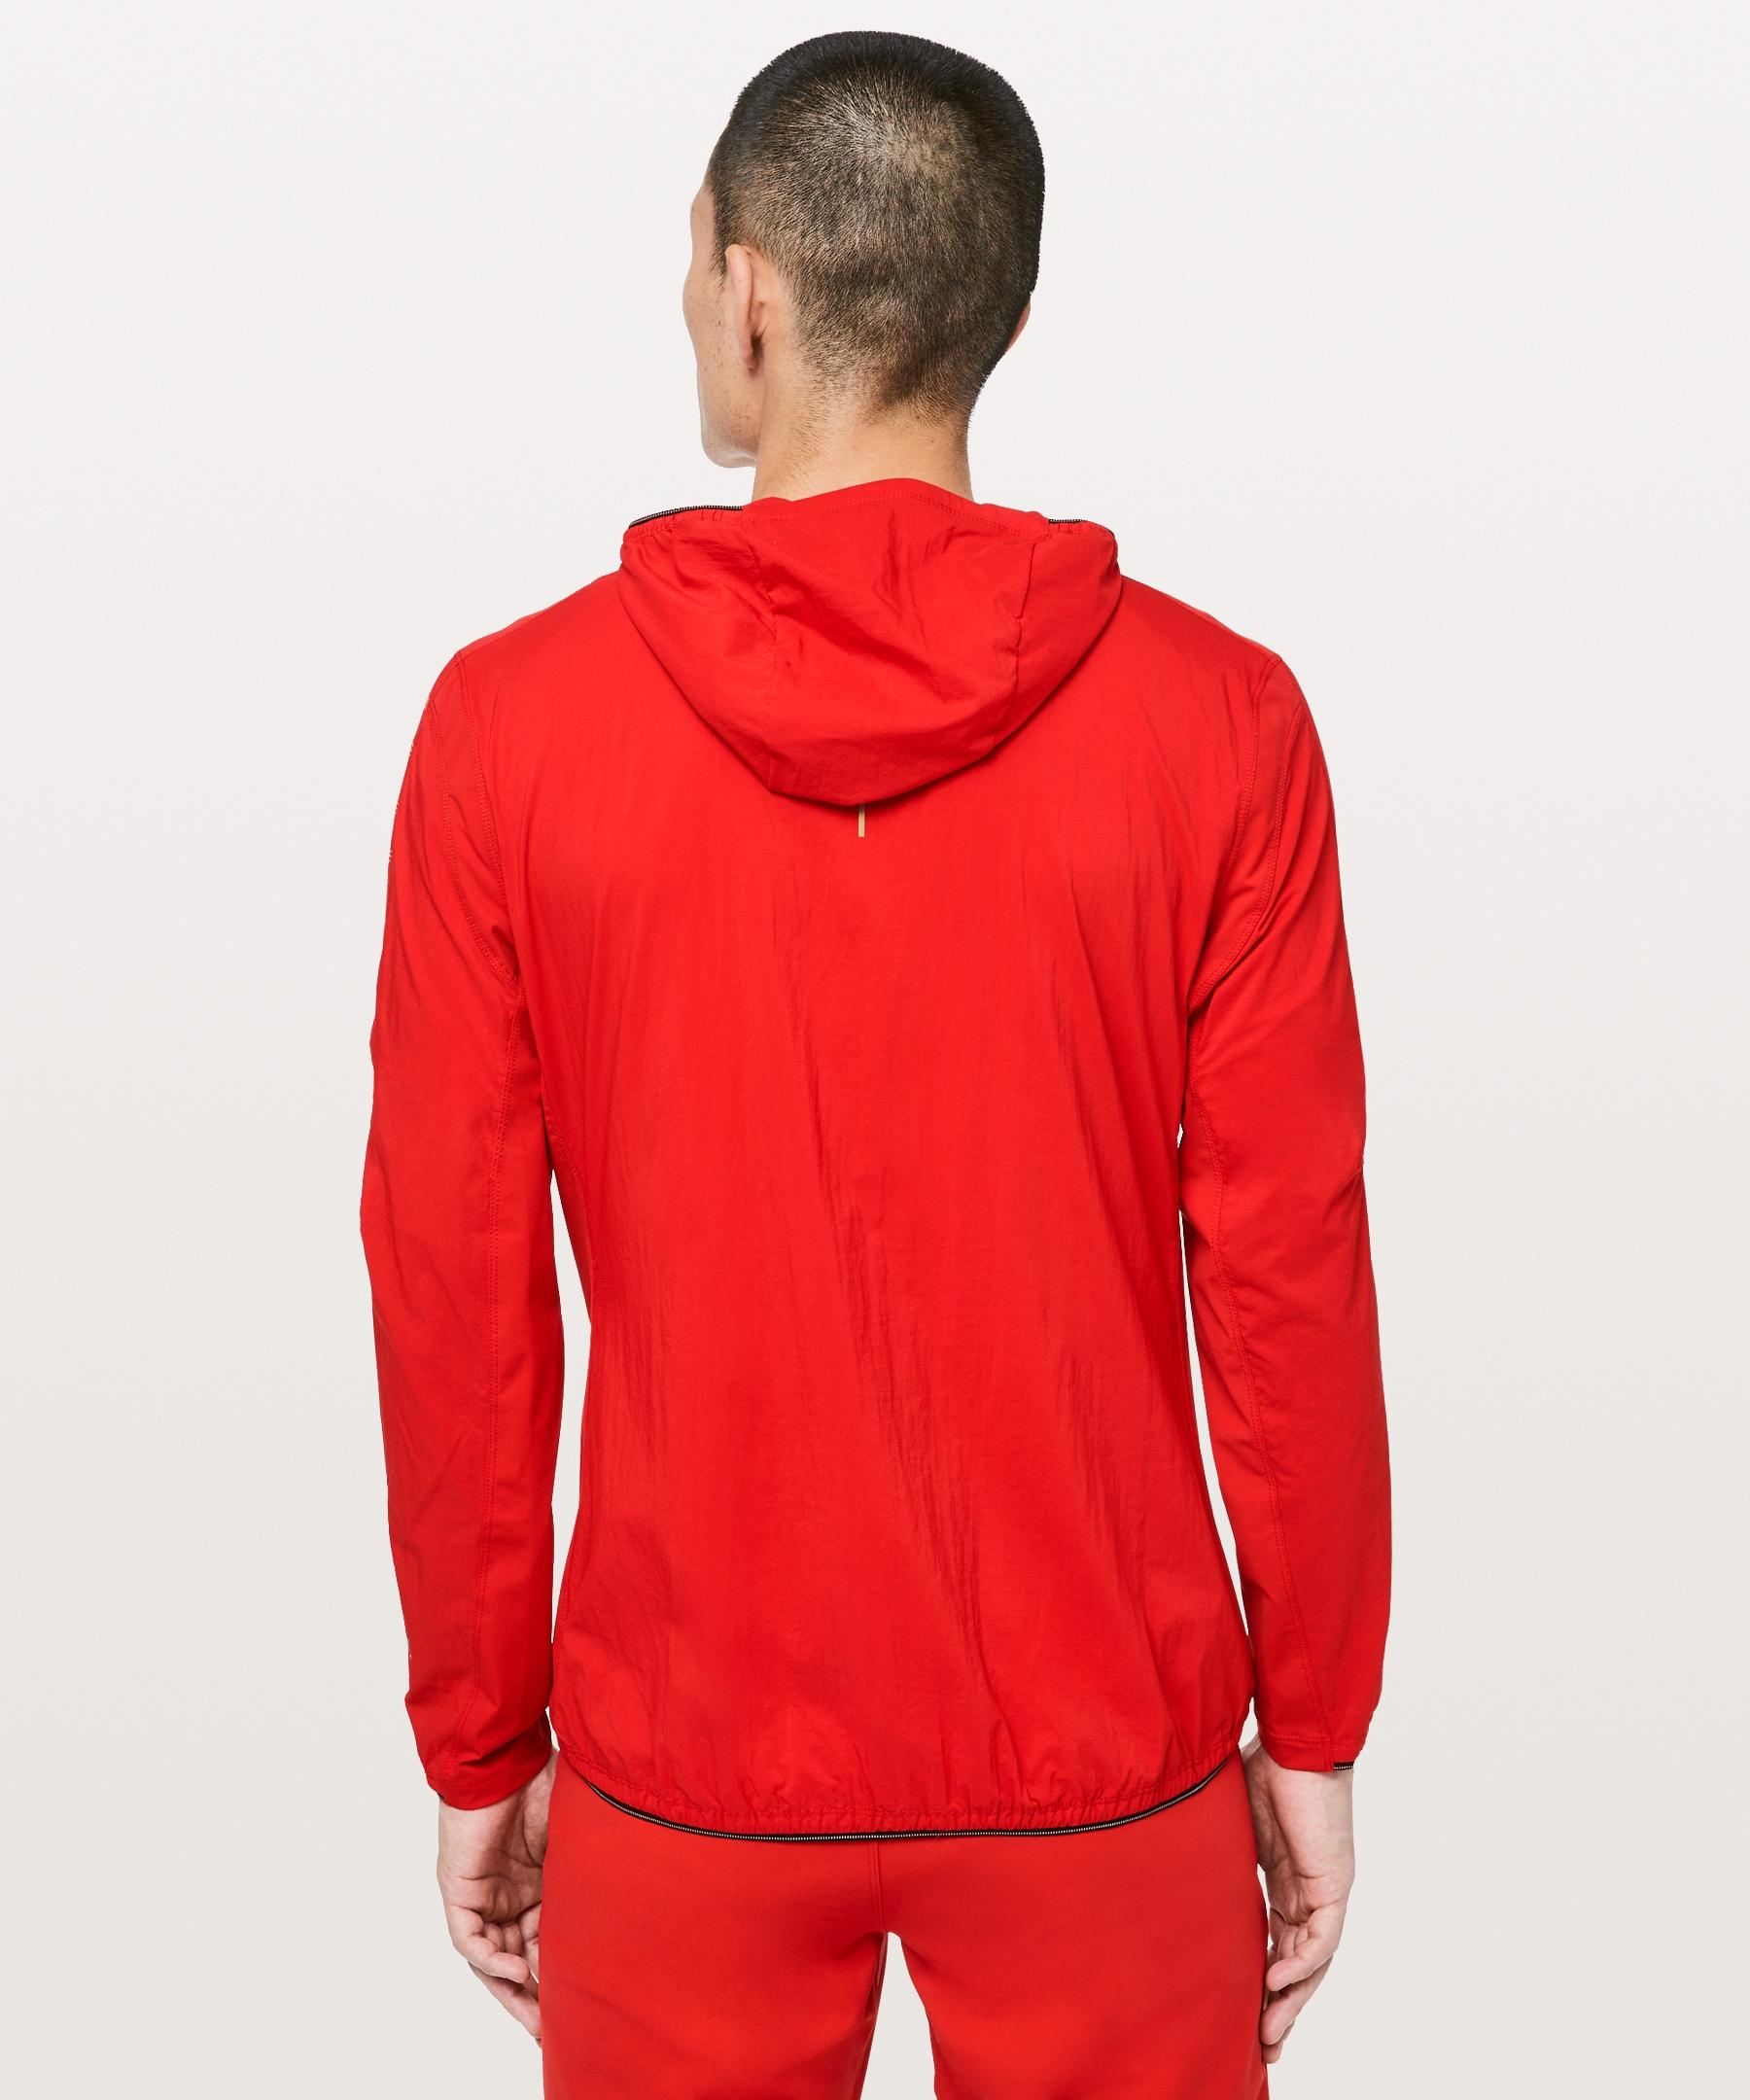 bbebfc246 lululemon athletica Lost In The Hustle Anorak  lunar New Year in Red ...